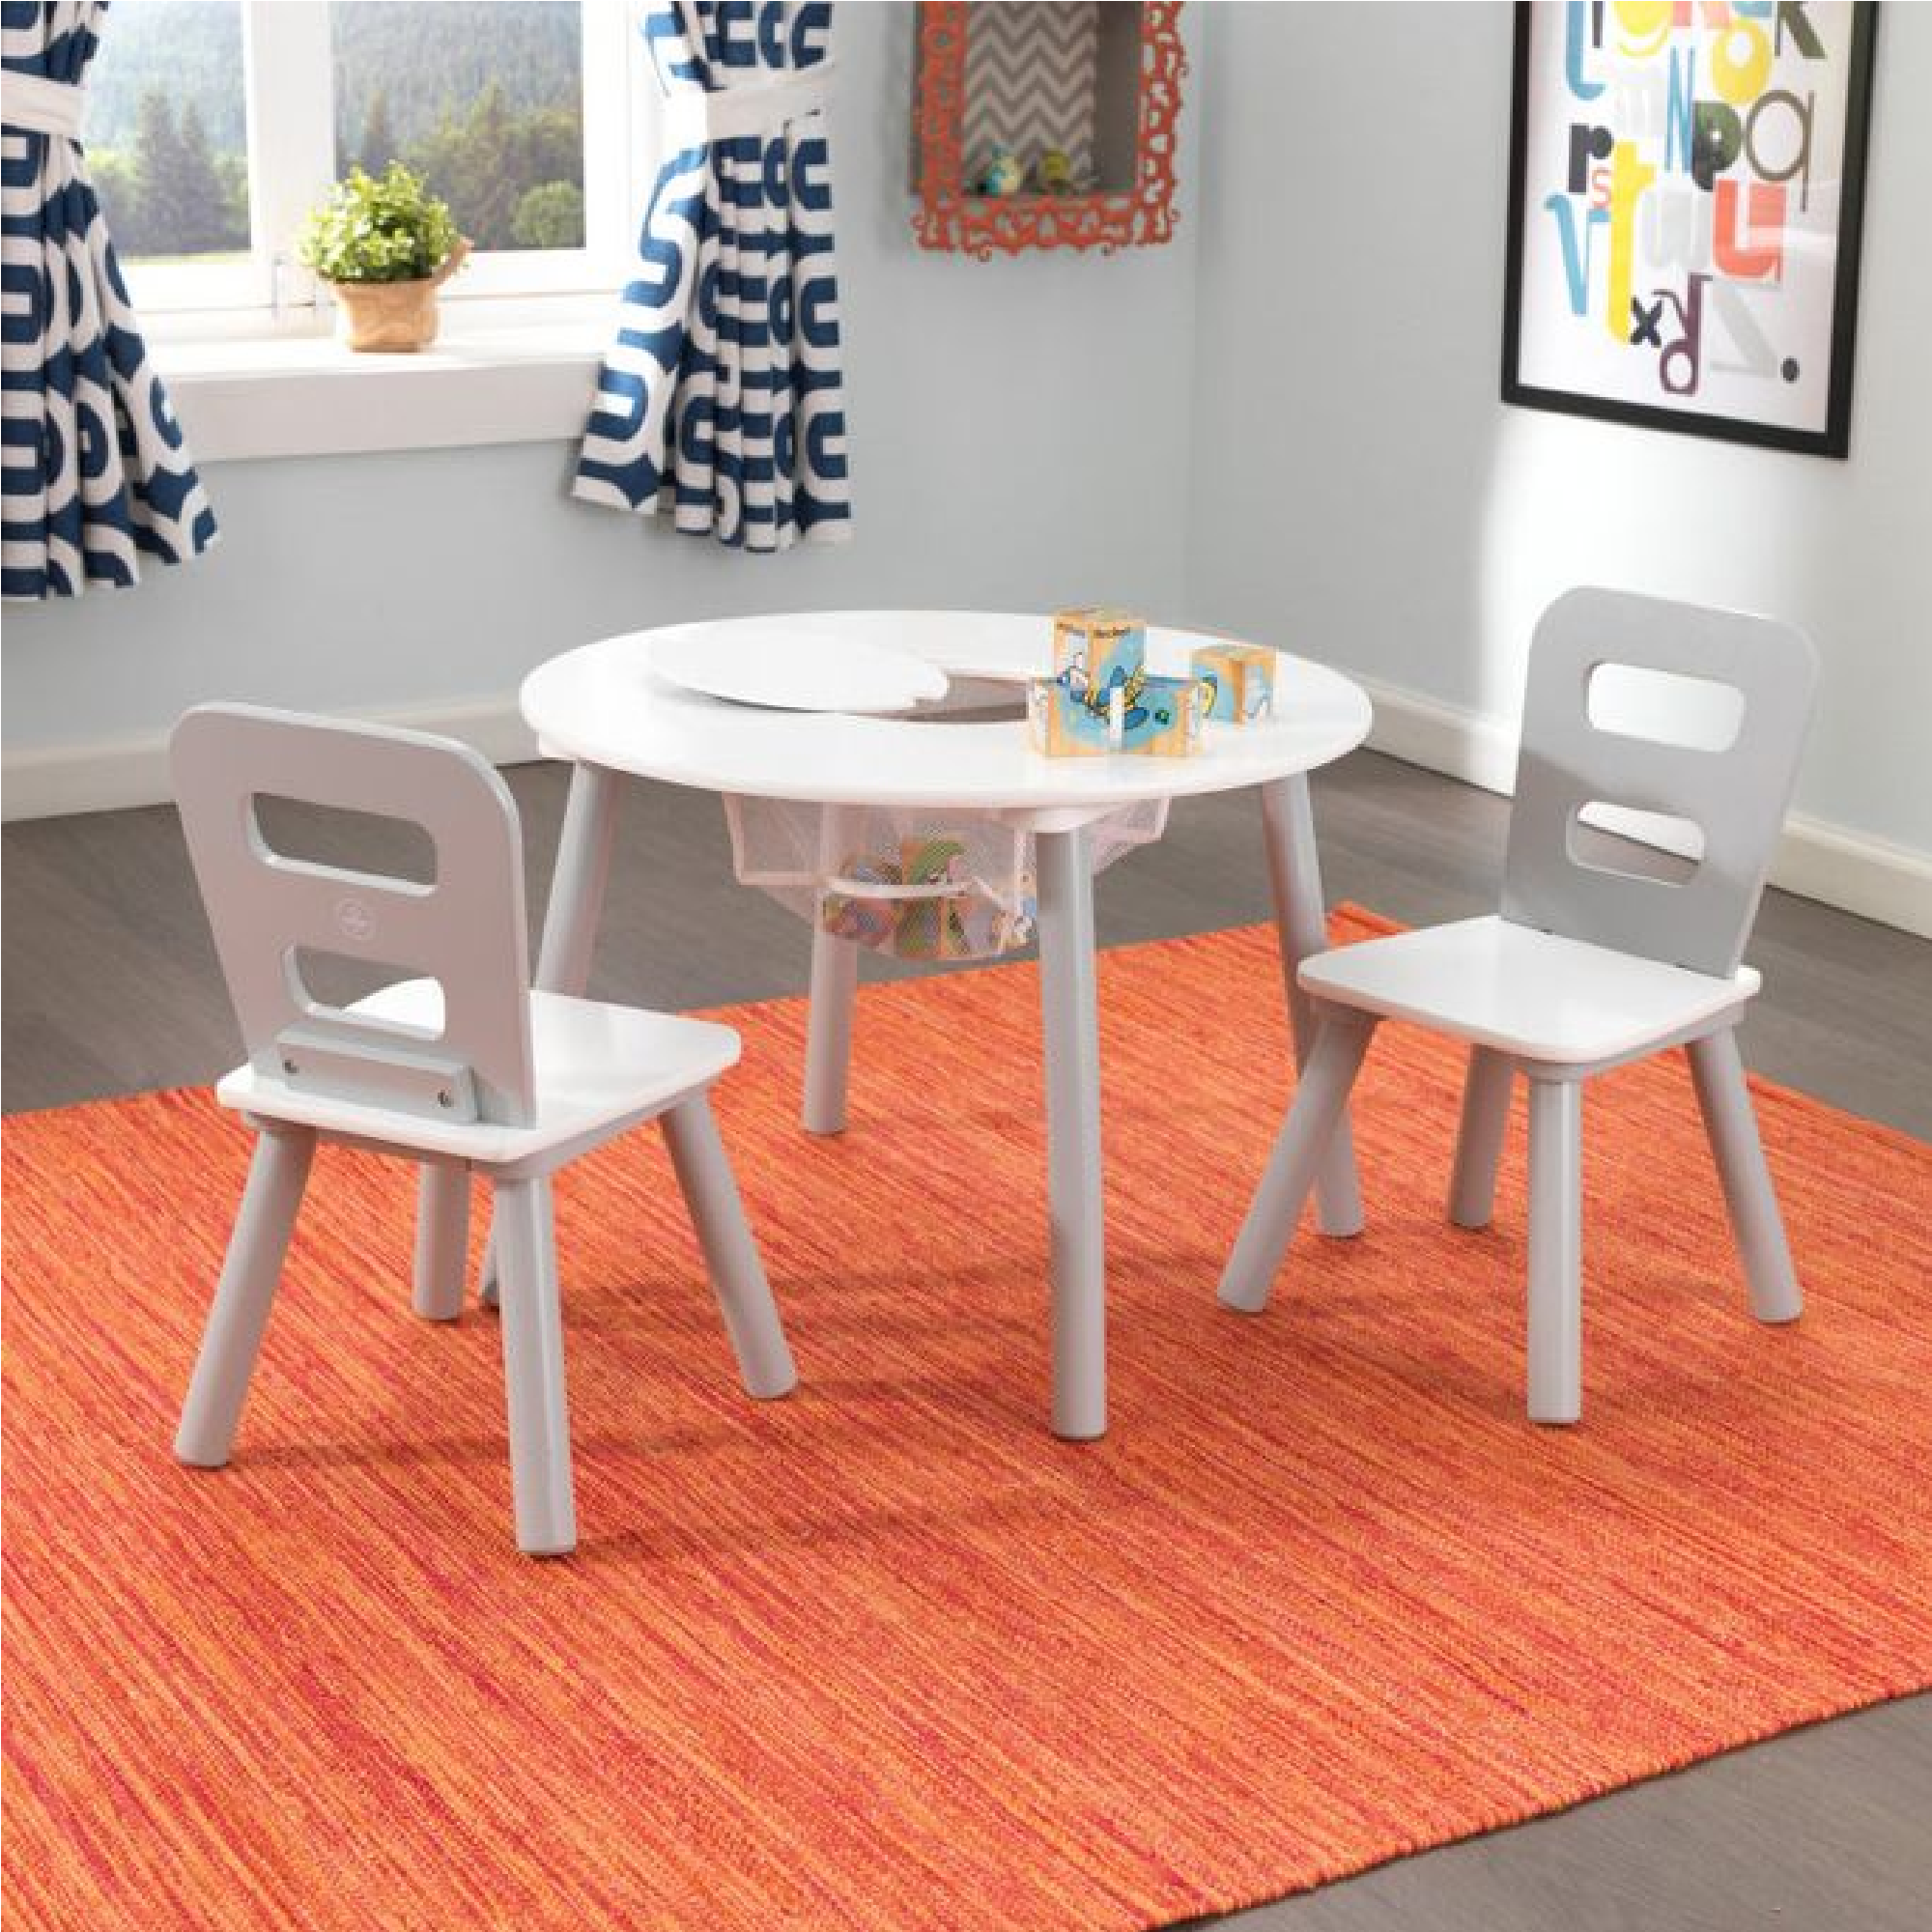 Kidkraft Round Table And 2 Chairs Set